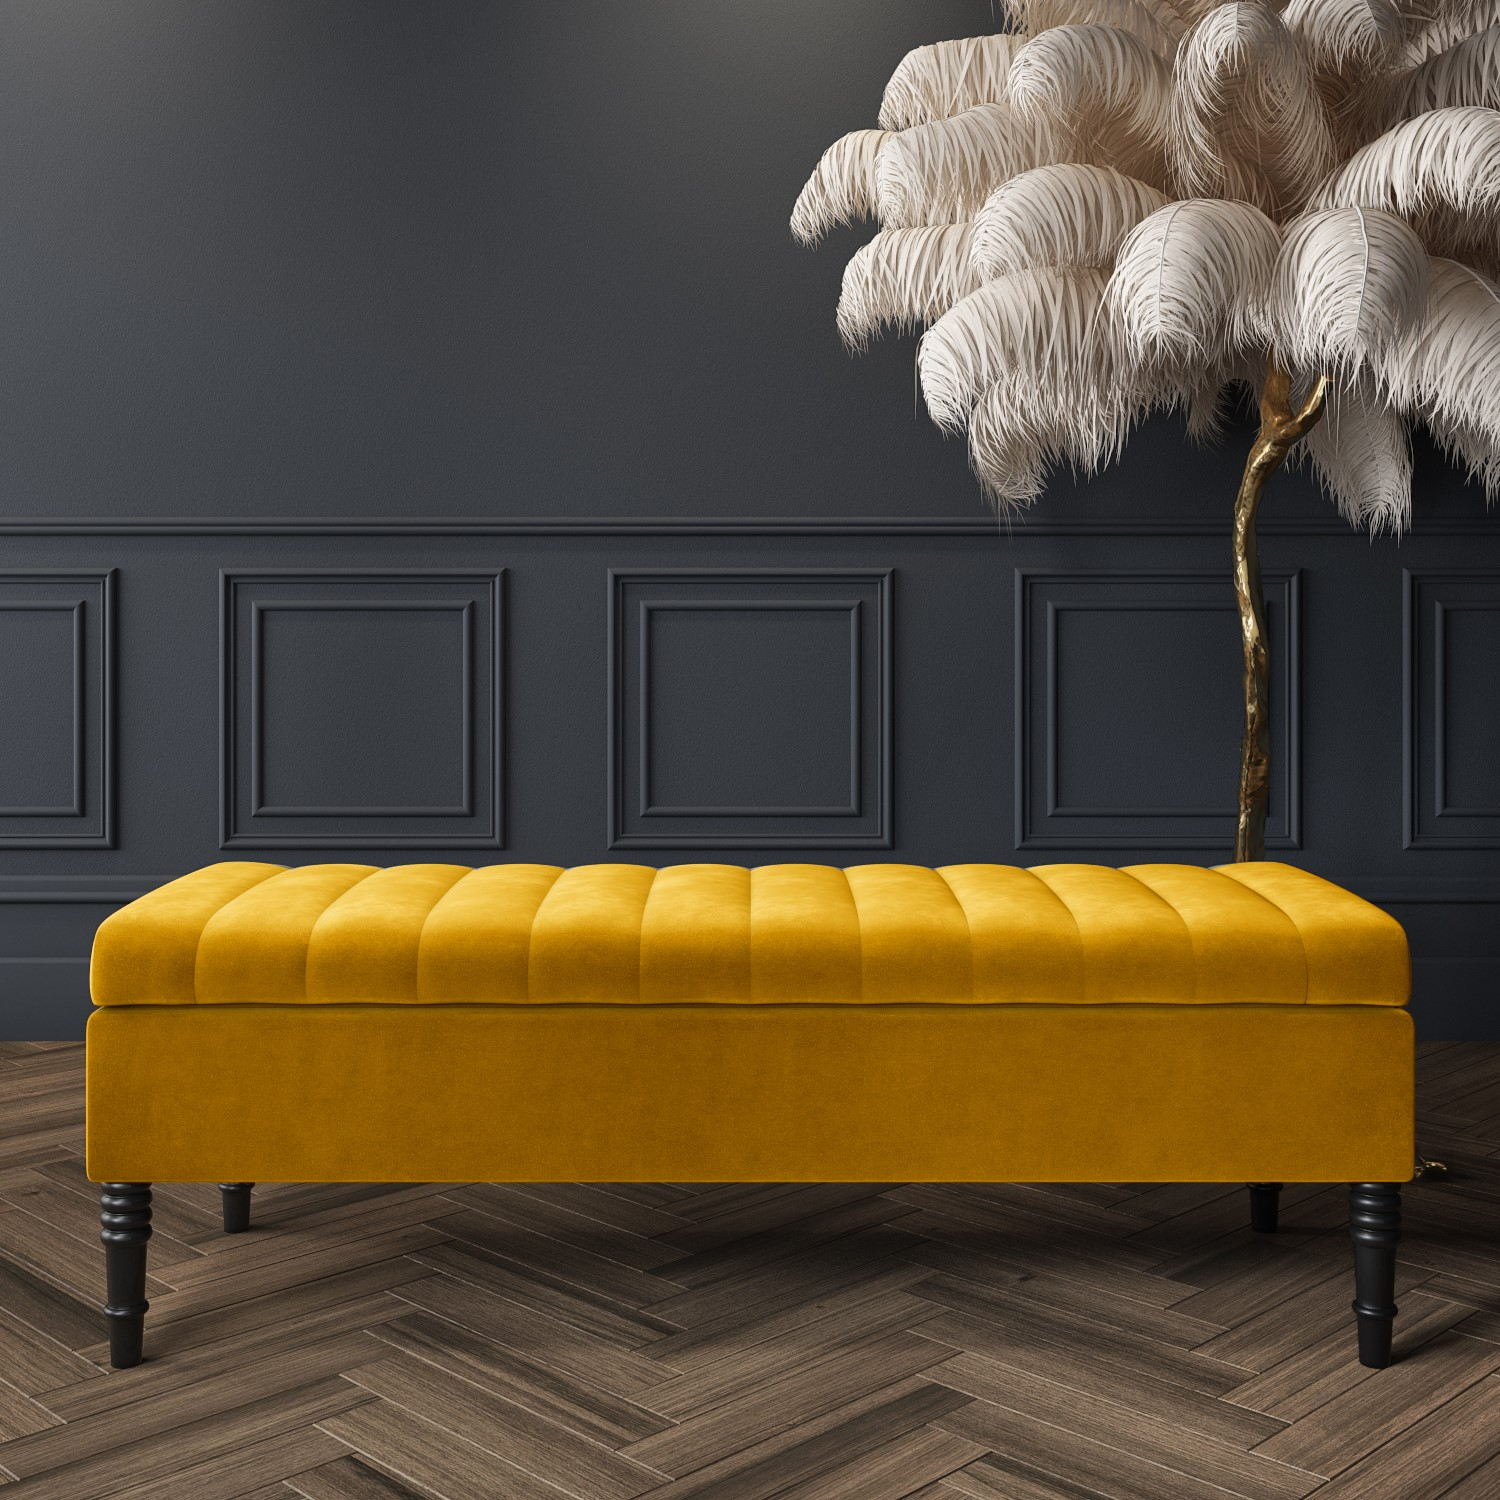 Astounding Safina Striped Top Ottoman Storage Bench In Yellow Velvet Gmtry Best Dining Table And Chair Ideas Images Gmtryco